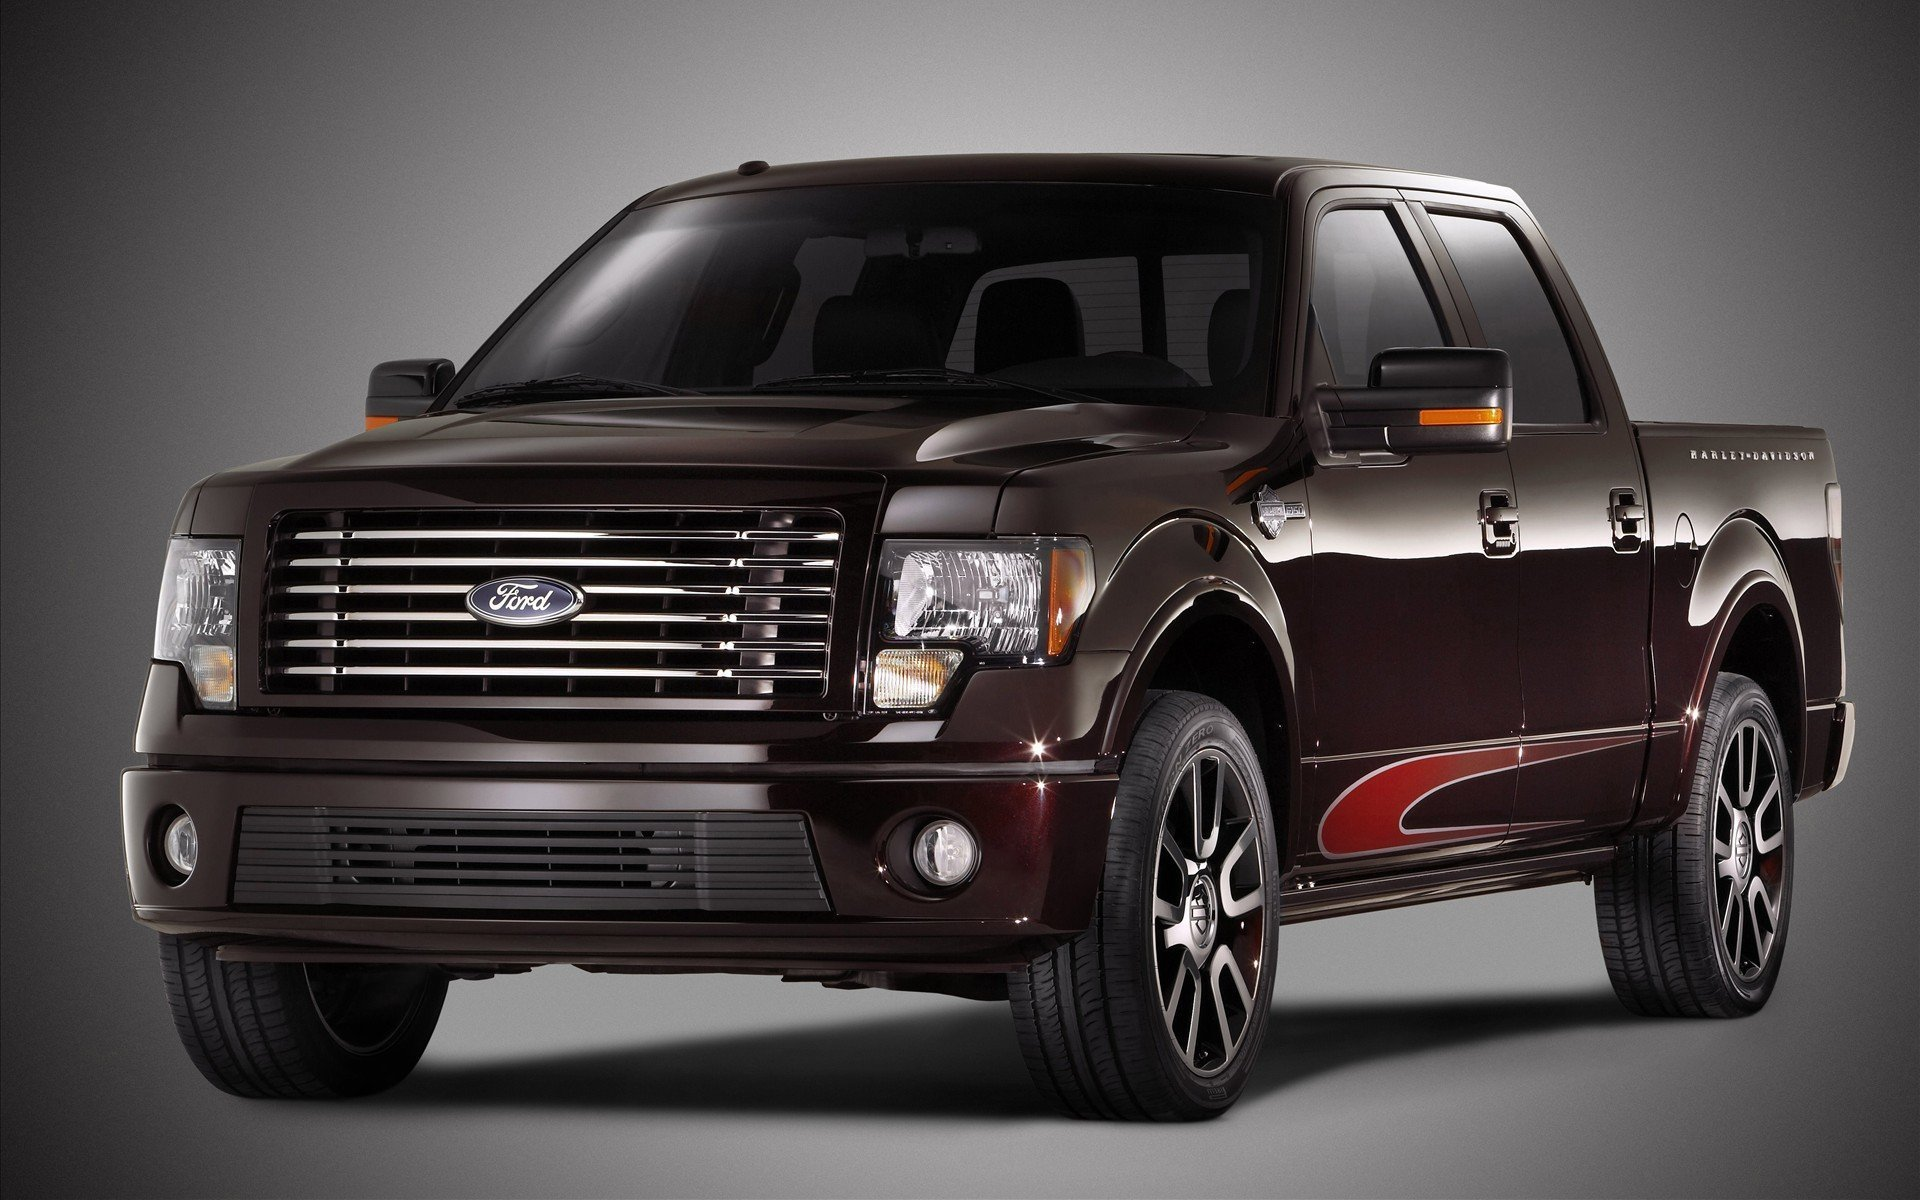 Ford F 150 wallpaper 32691 1920x1200